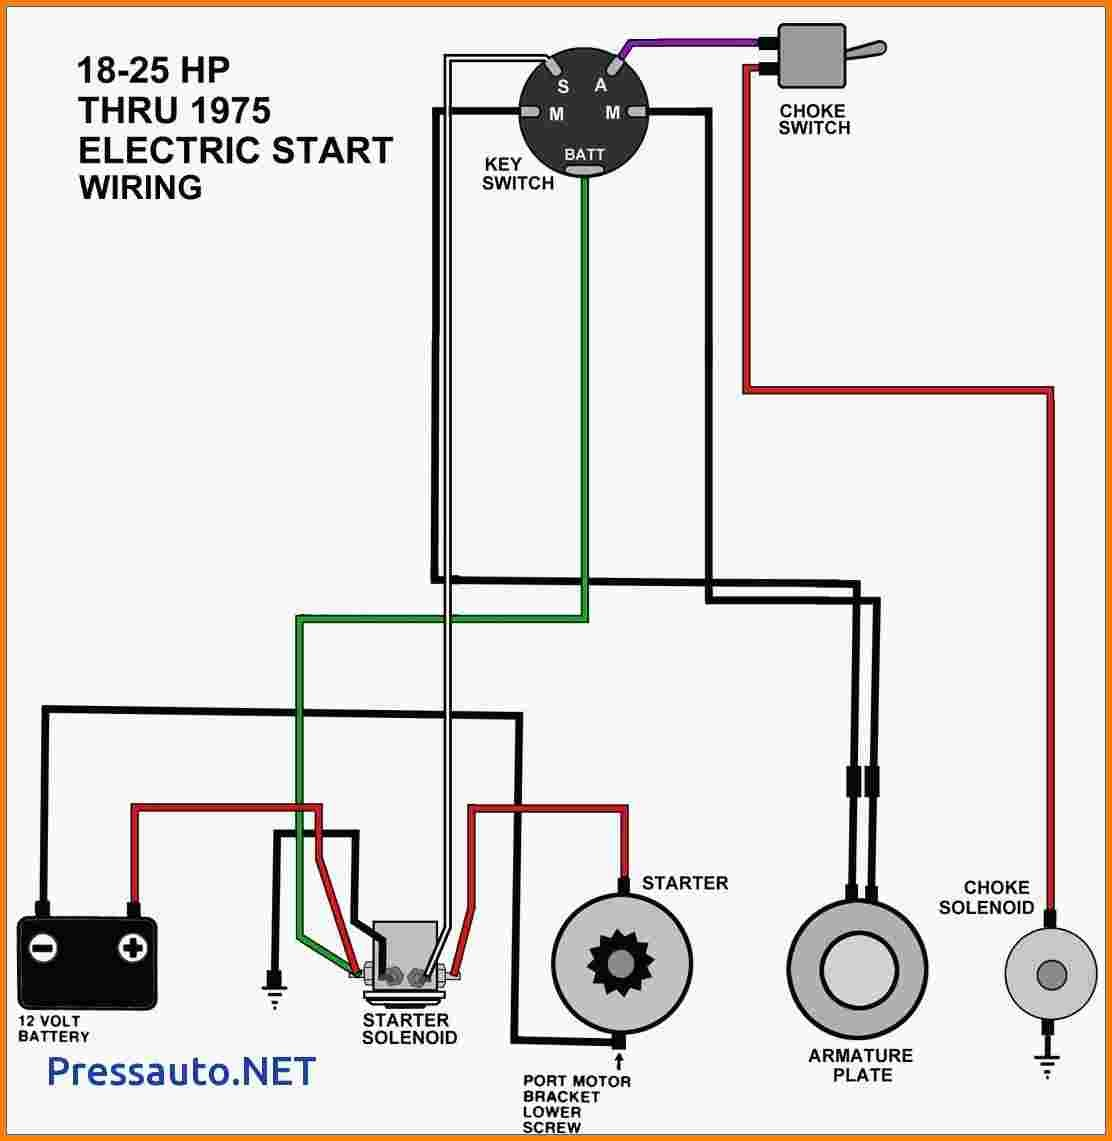 Remote Starter Solenoid Wiring Diagram from static-assets.imageservice.cloud